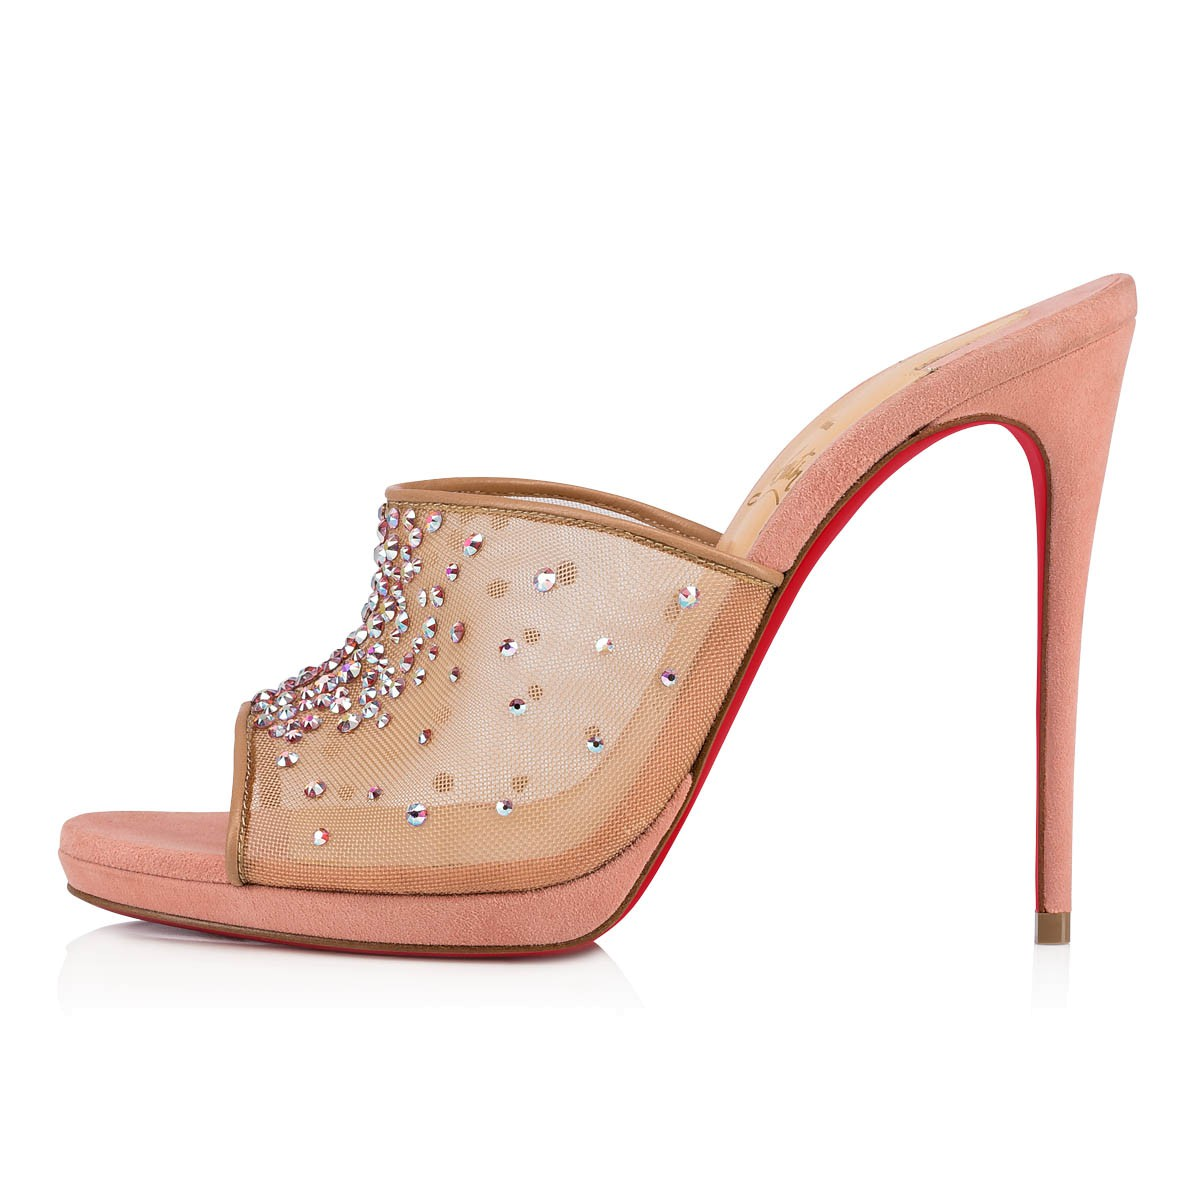 Shoes - Violas Mule - Christian Louboutin